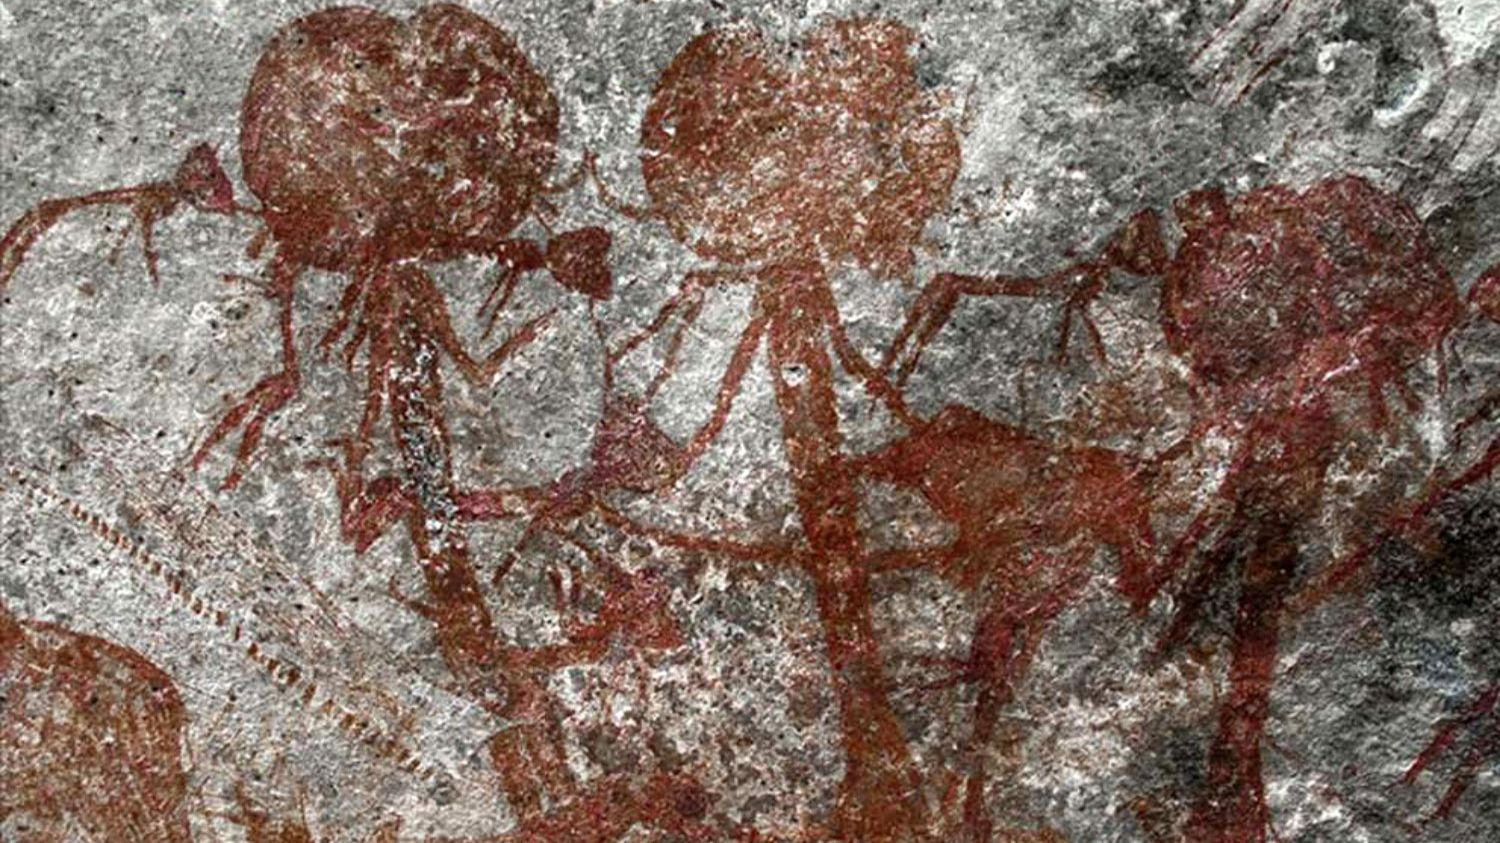 The mystery of an ancient drawing depicting people with buffalo heads unraveled